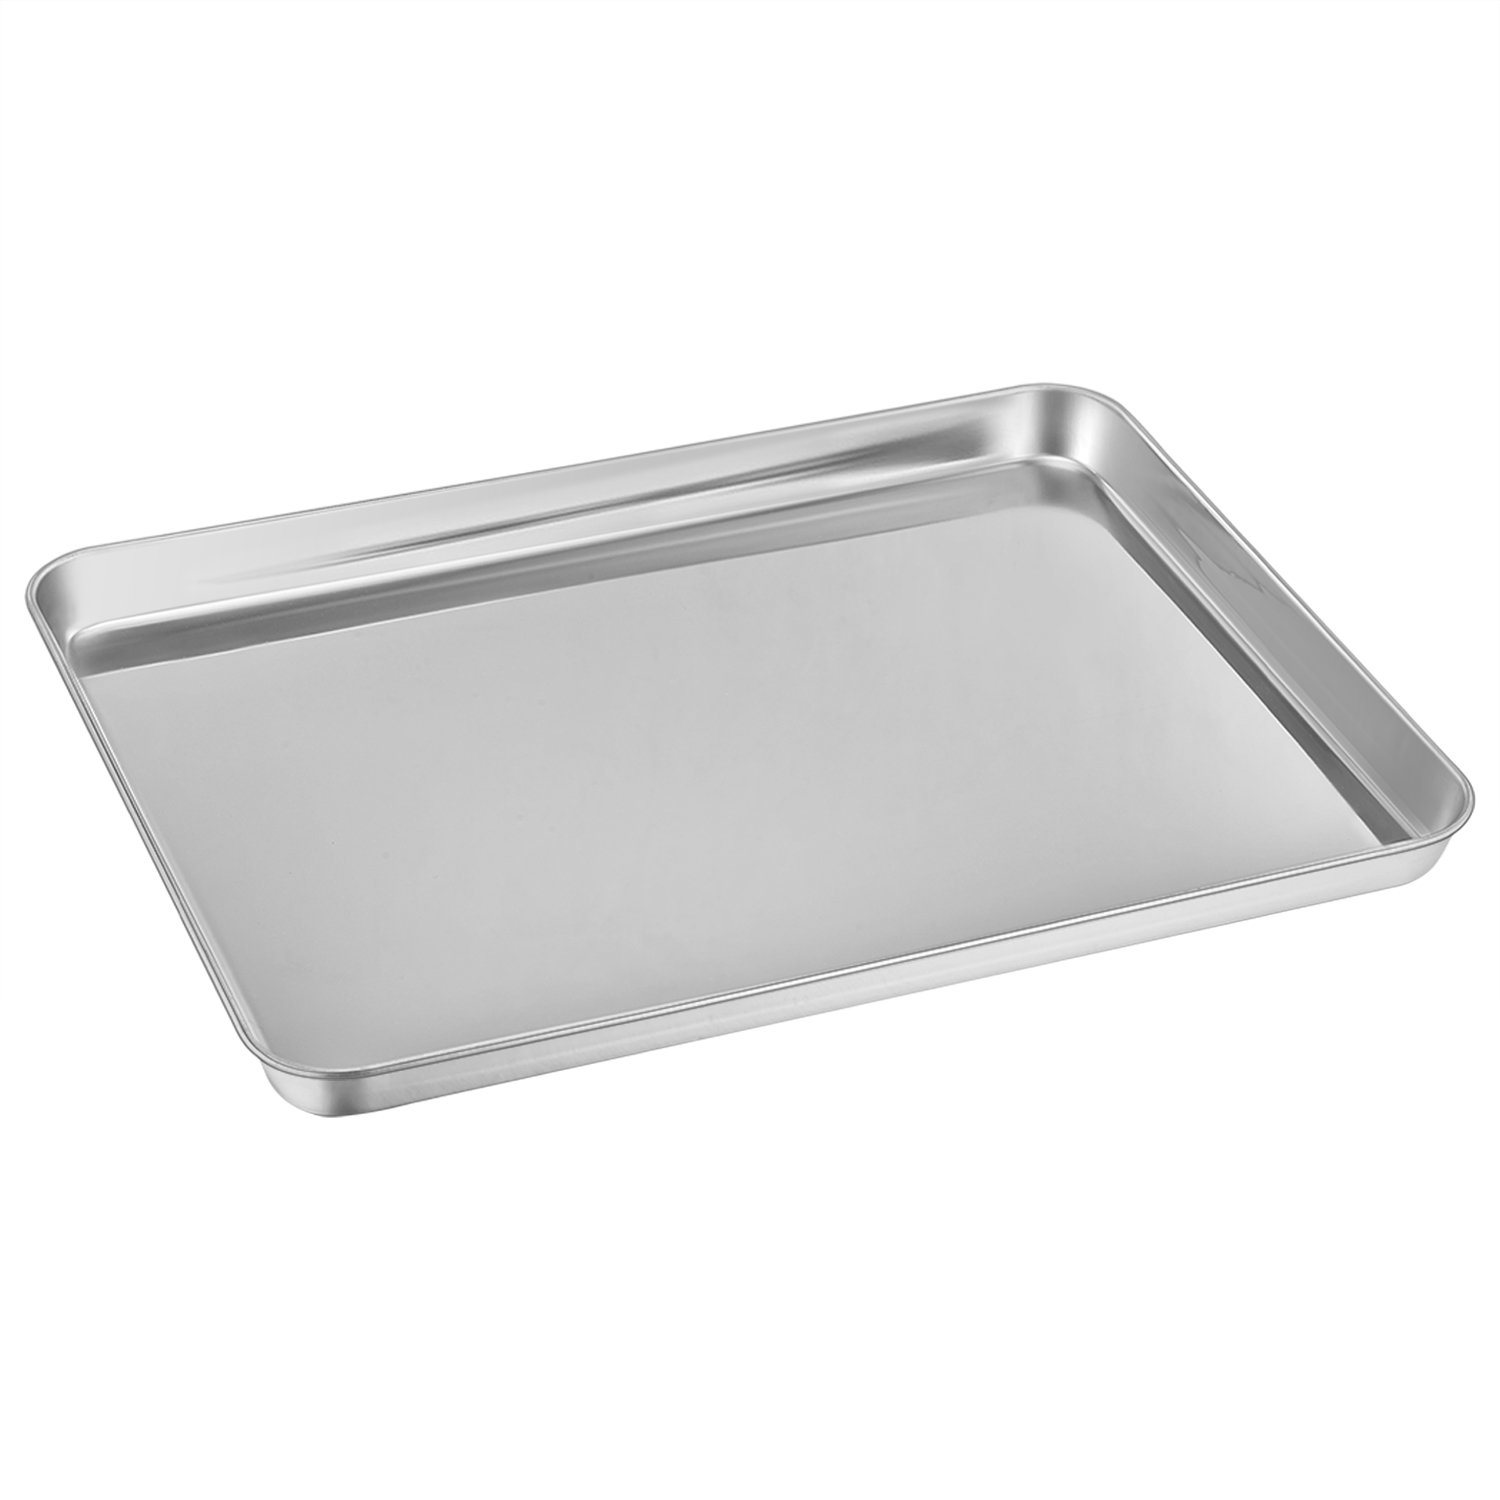 Baking Pan, E-far Baking Sheet Pure Stainless Steel Cookie Sheet Pan Rectangle Size, Non Toxic & Healthy, Rust Free & Mirror Finish, Easy Clean & Dishwasher Safe